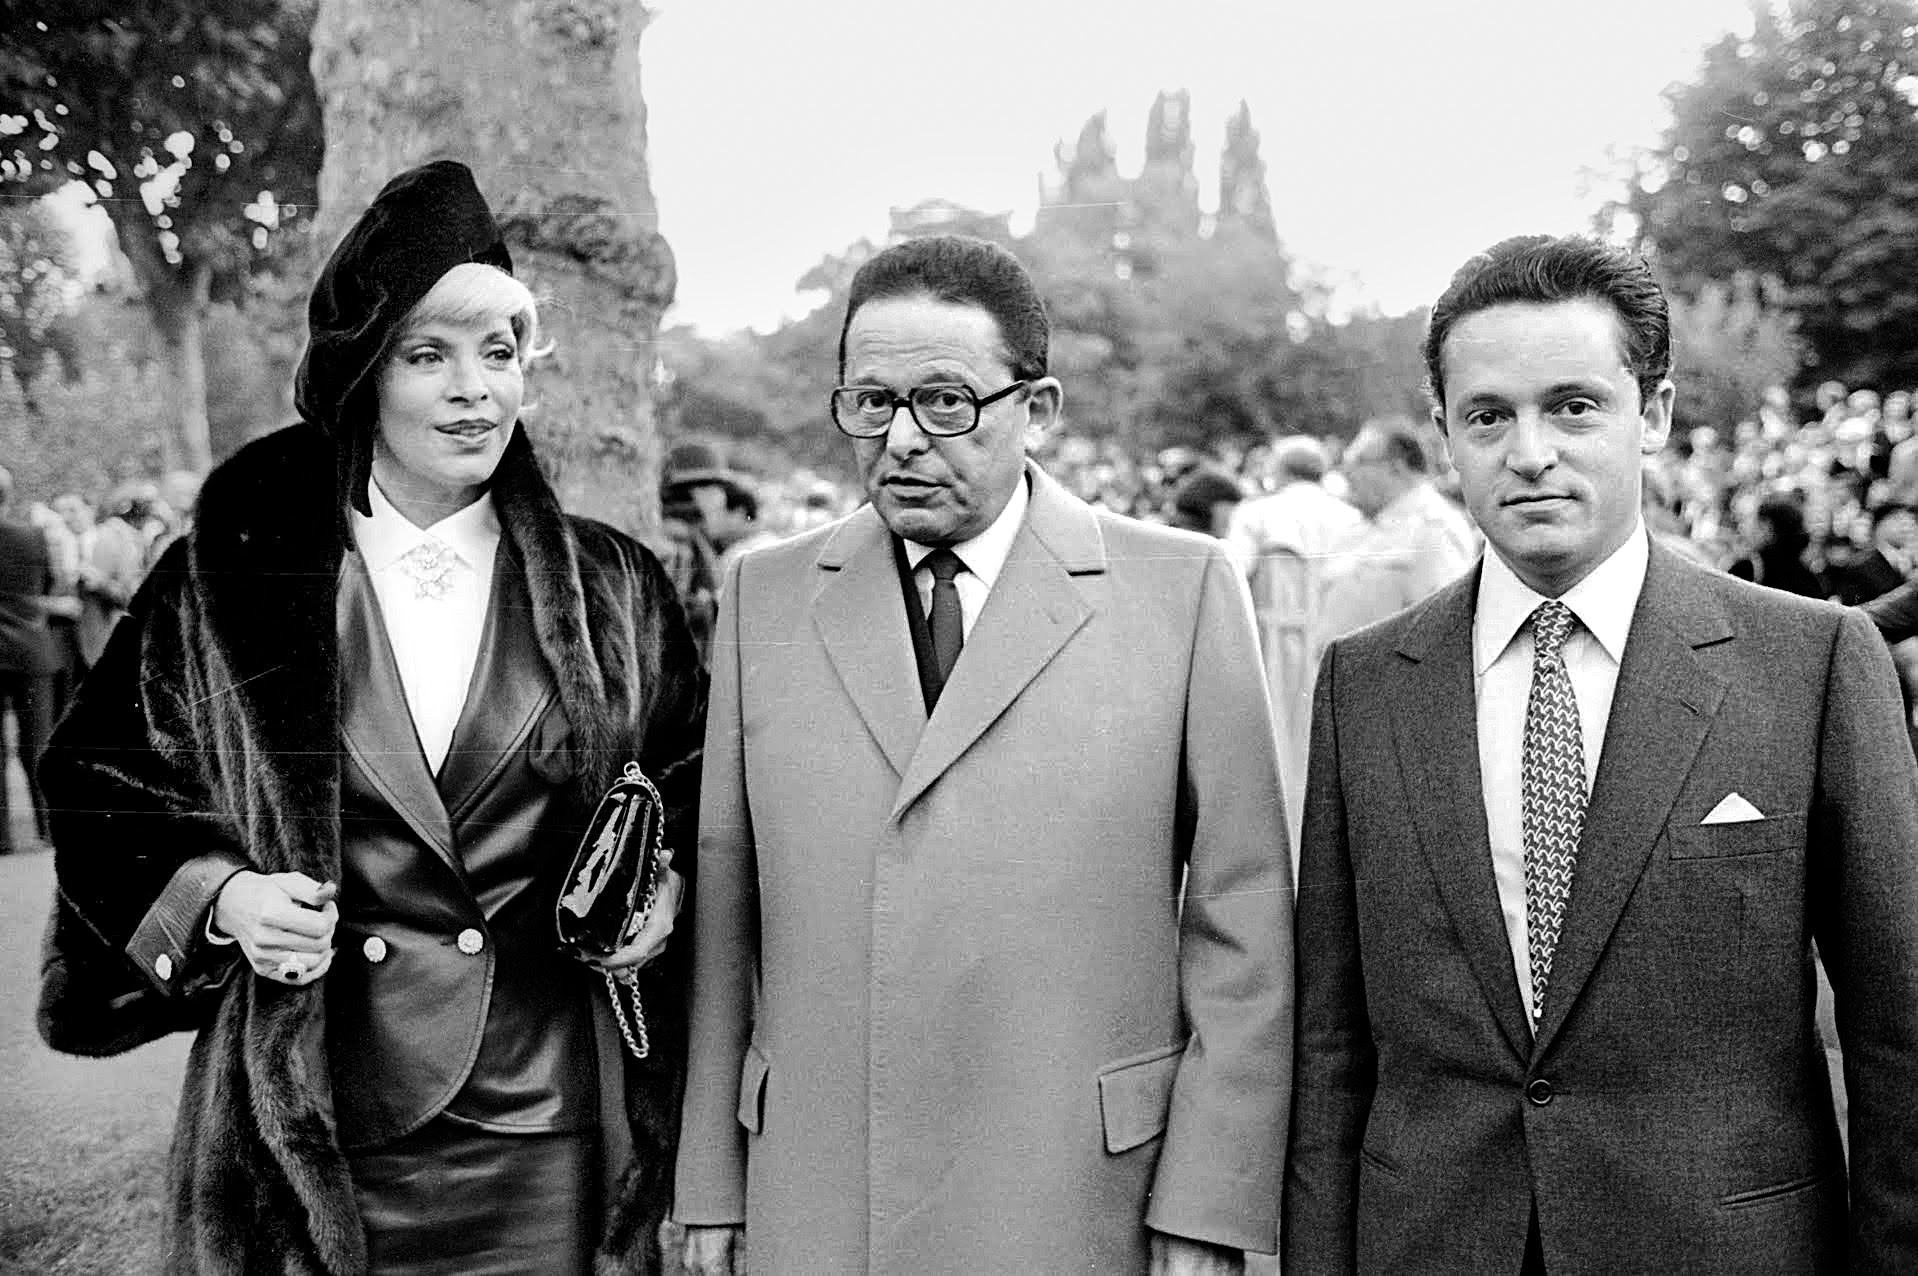 Daniel, center, with his second wife Sylvia, and Guy in 1984